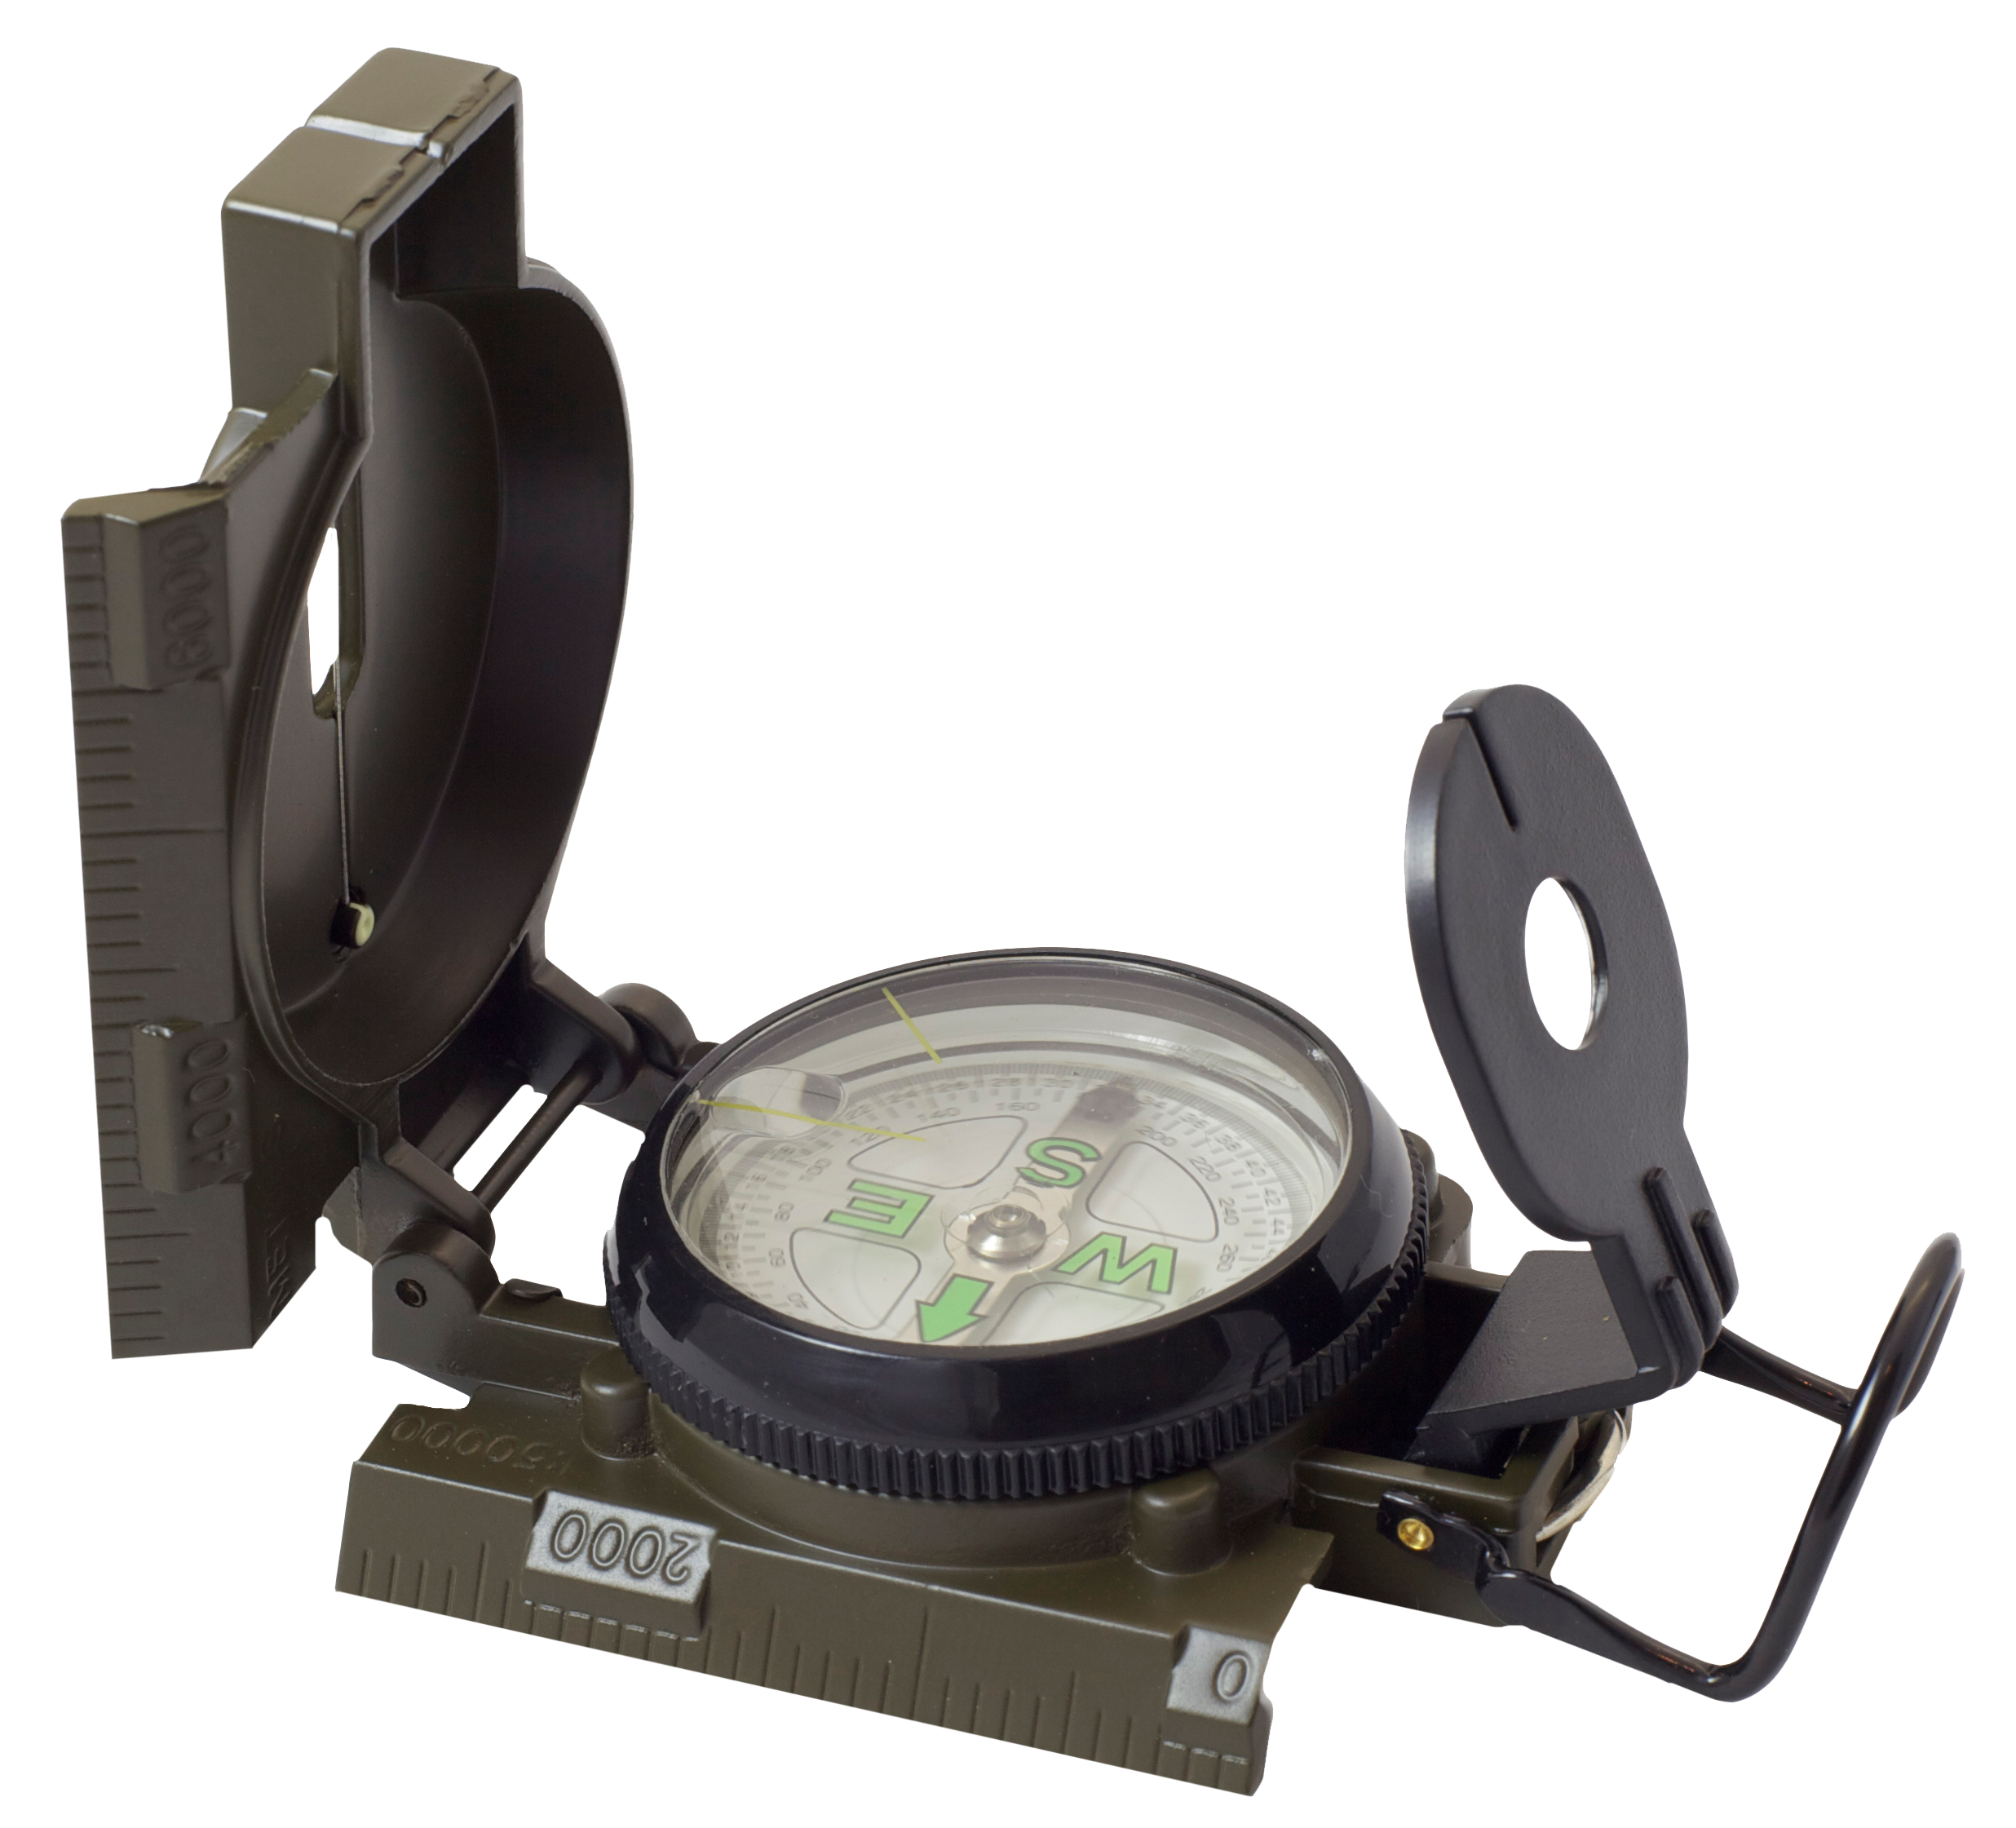 Humvee Accessories HMVCOMPASSOD Military Compass Black